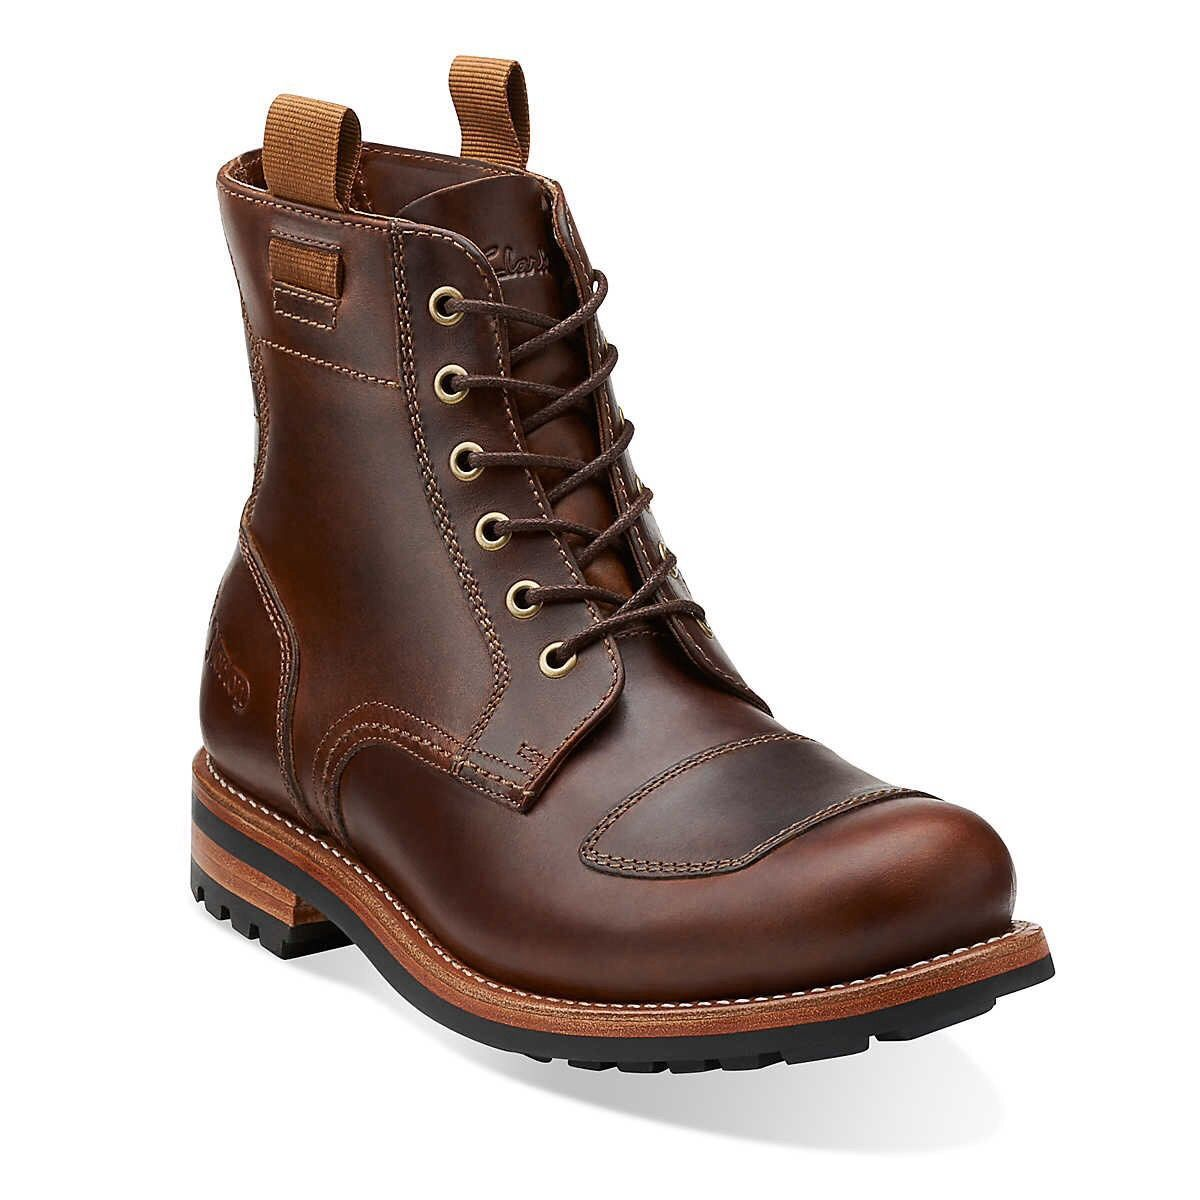 Our large range of mens boots are fashionable, affordable and comfortable. Choose your boot style and get free UK delivery online at Shoe Zone.